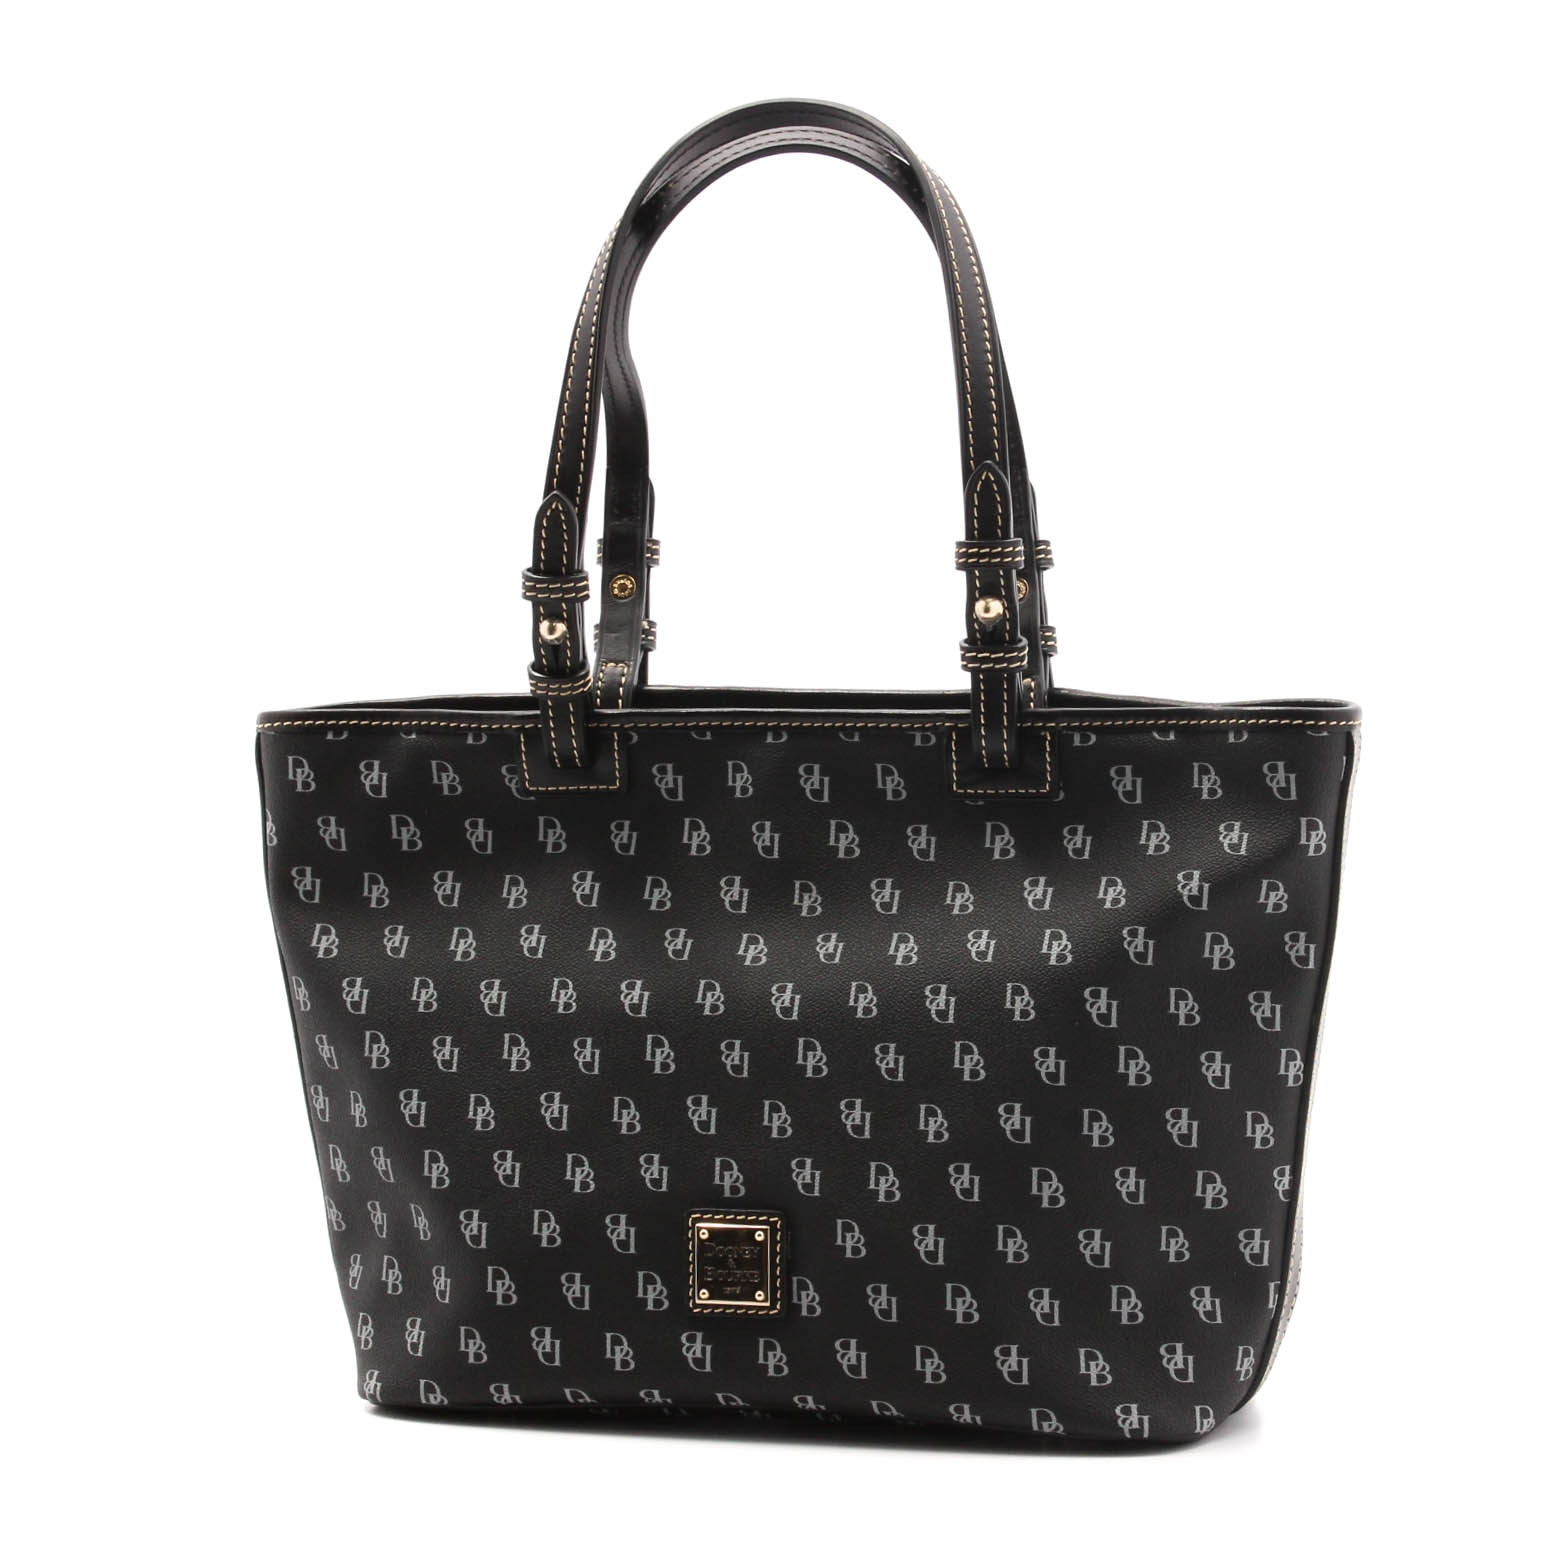 Dooney & Bourke Black Monogram Coated Canvas and Leather Tote